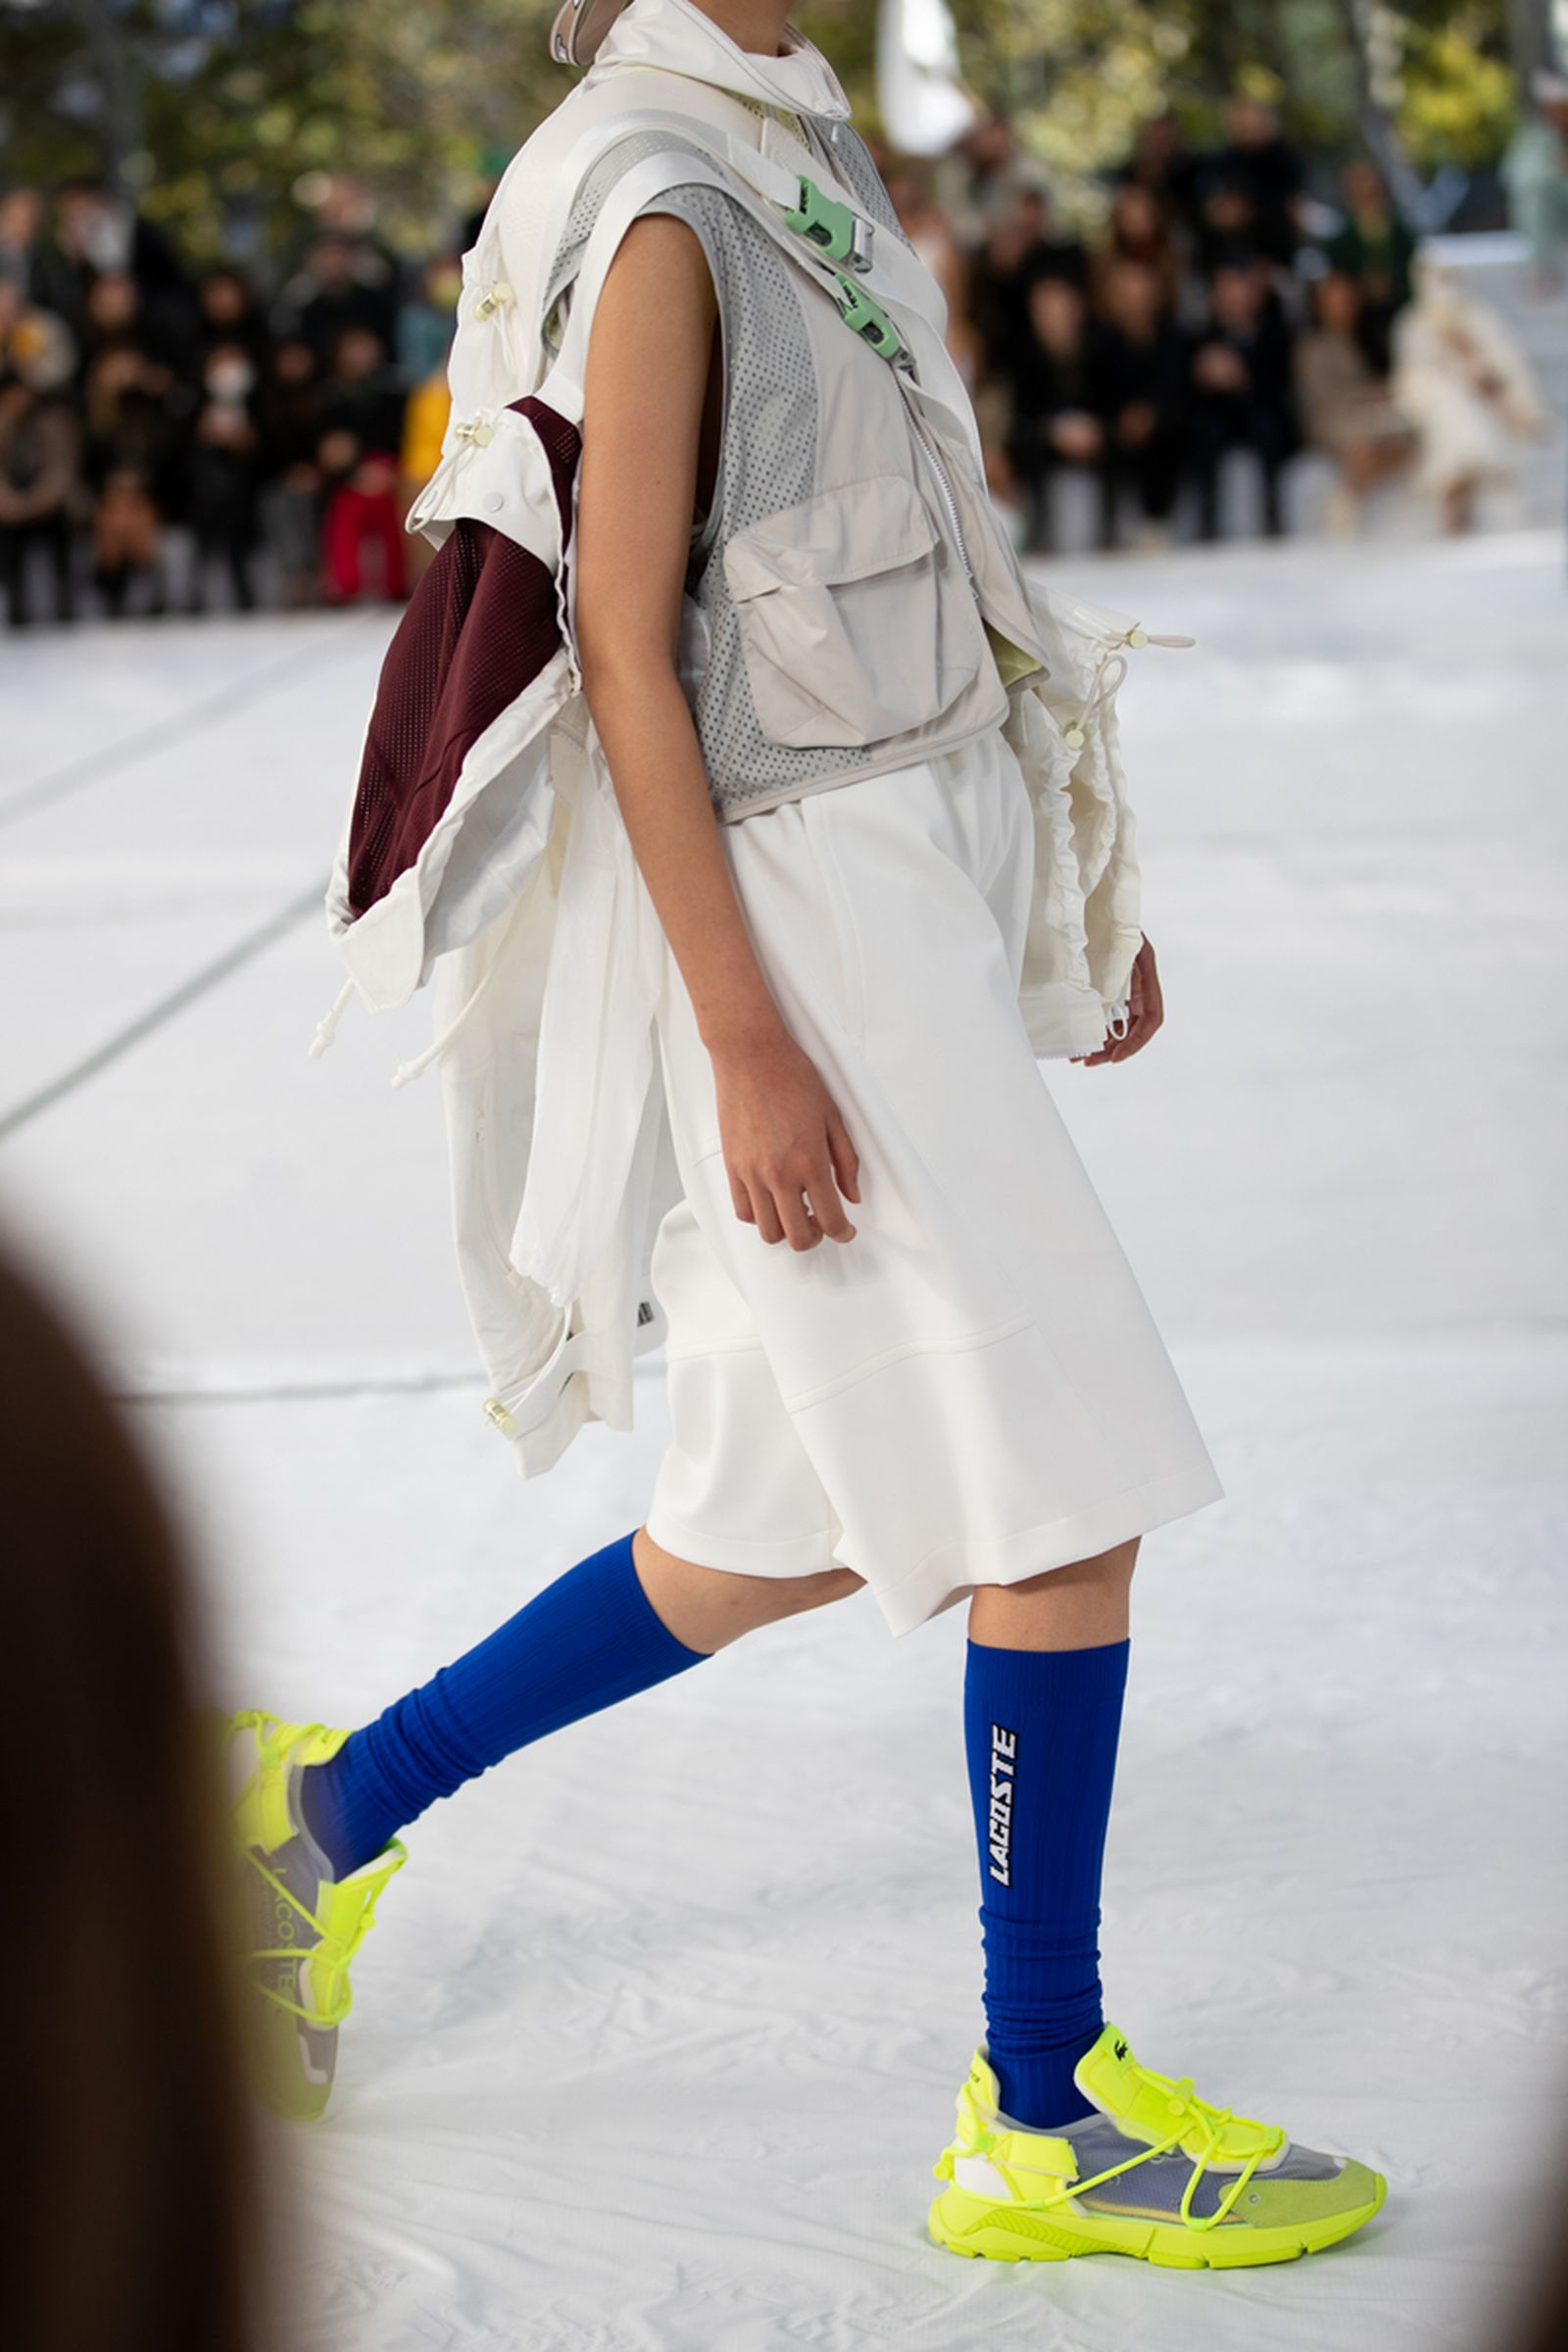 lacoste-spring-summer-2022-collection (38)